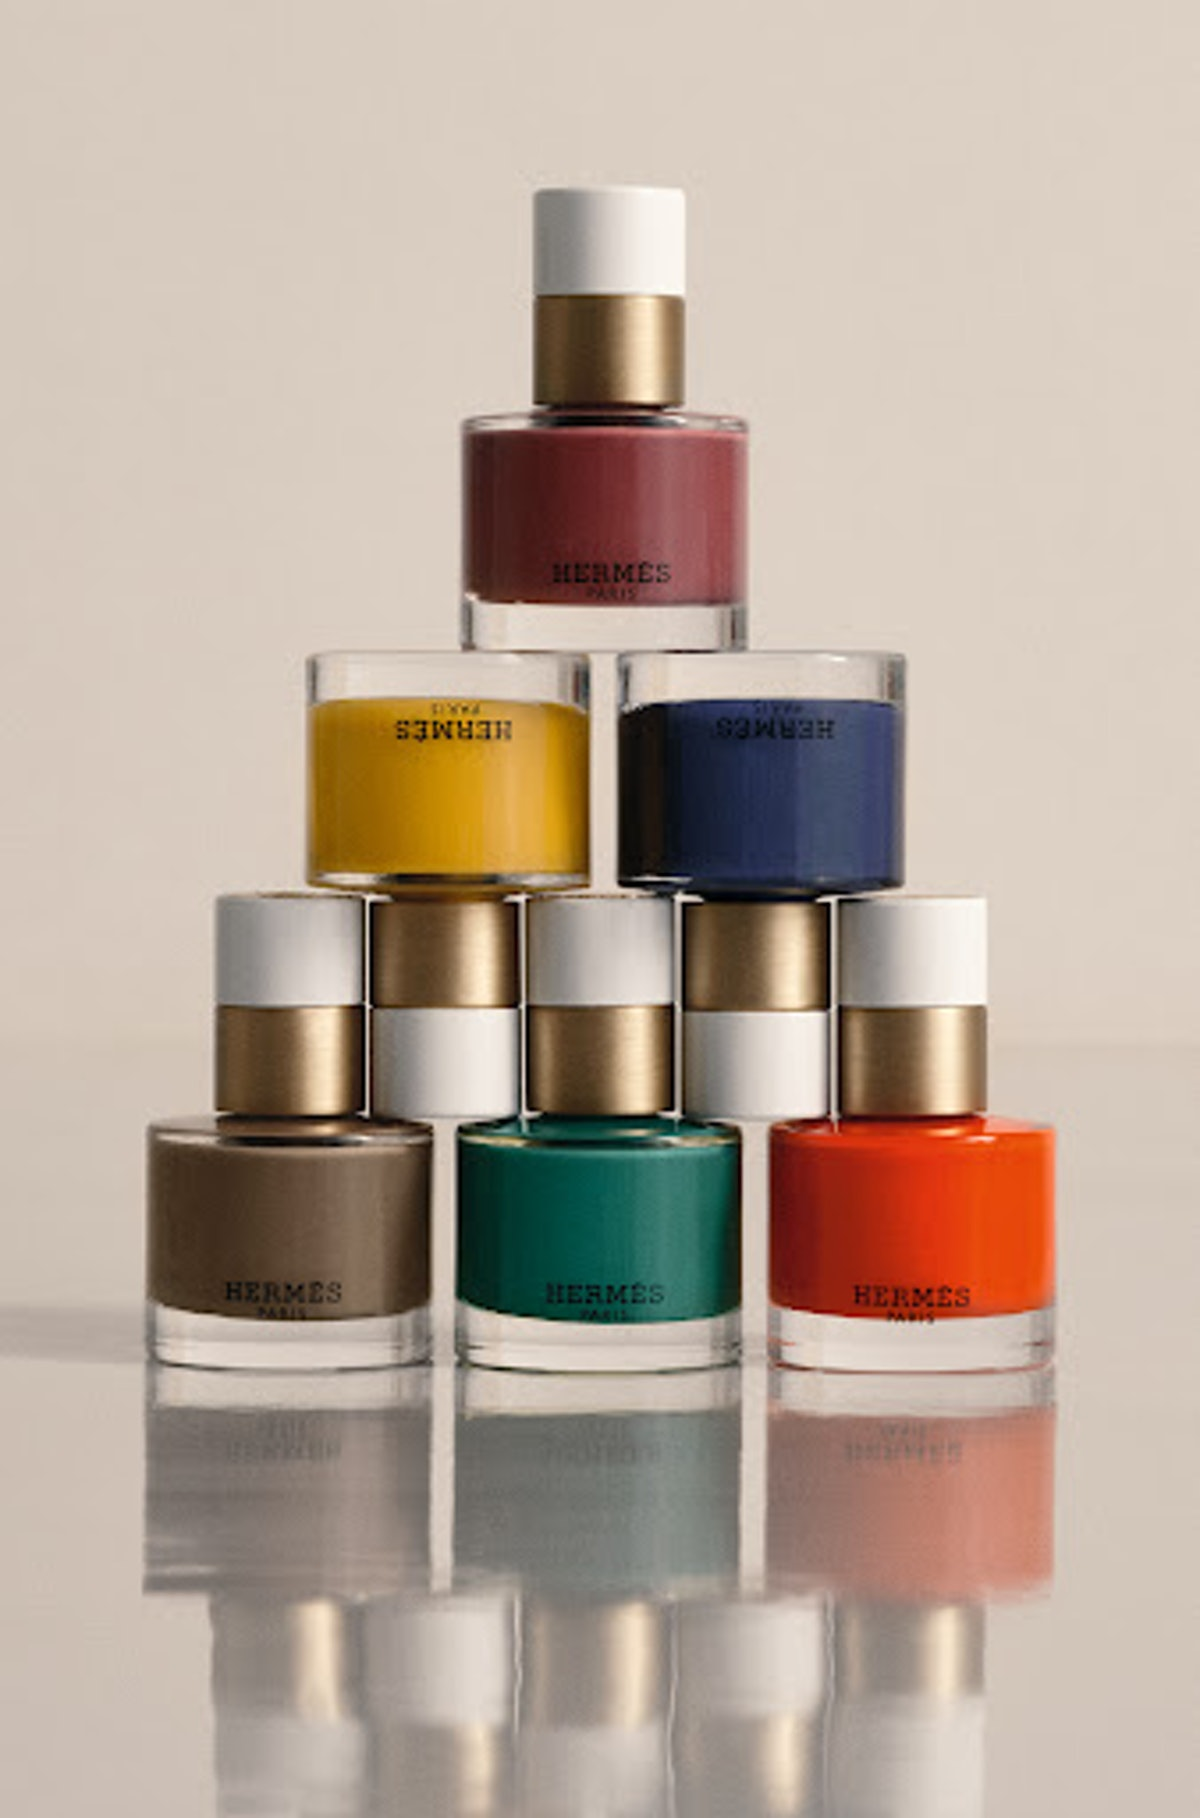 Hermès Beauty nail polished stacked in a pyramid